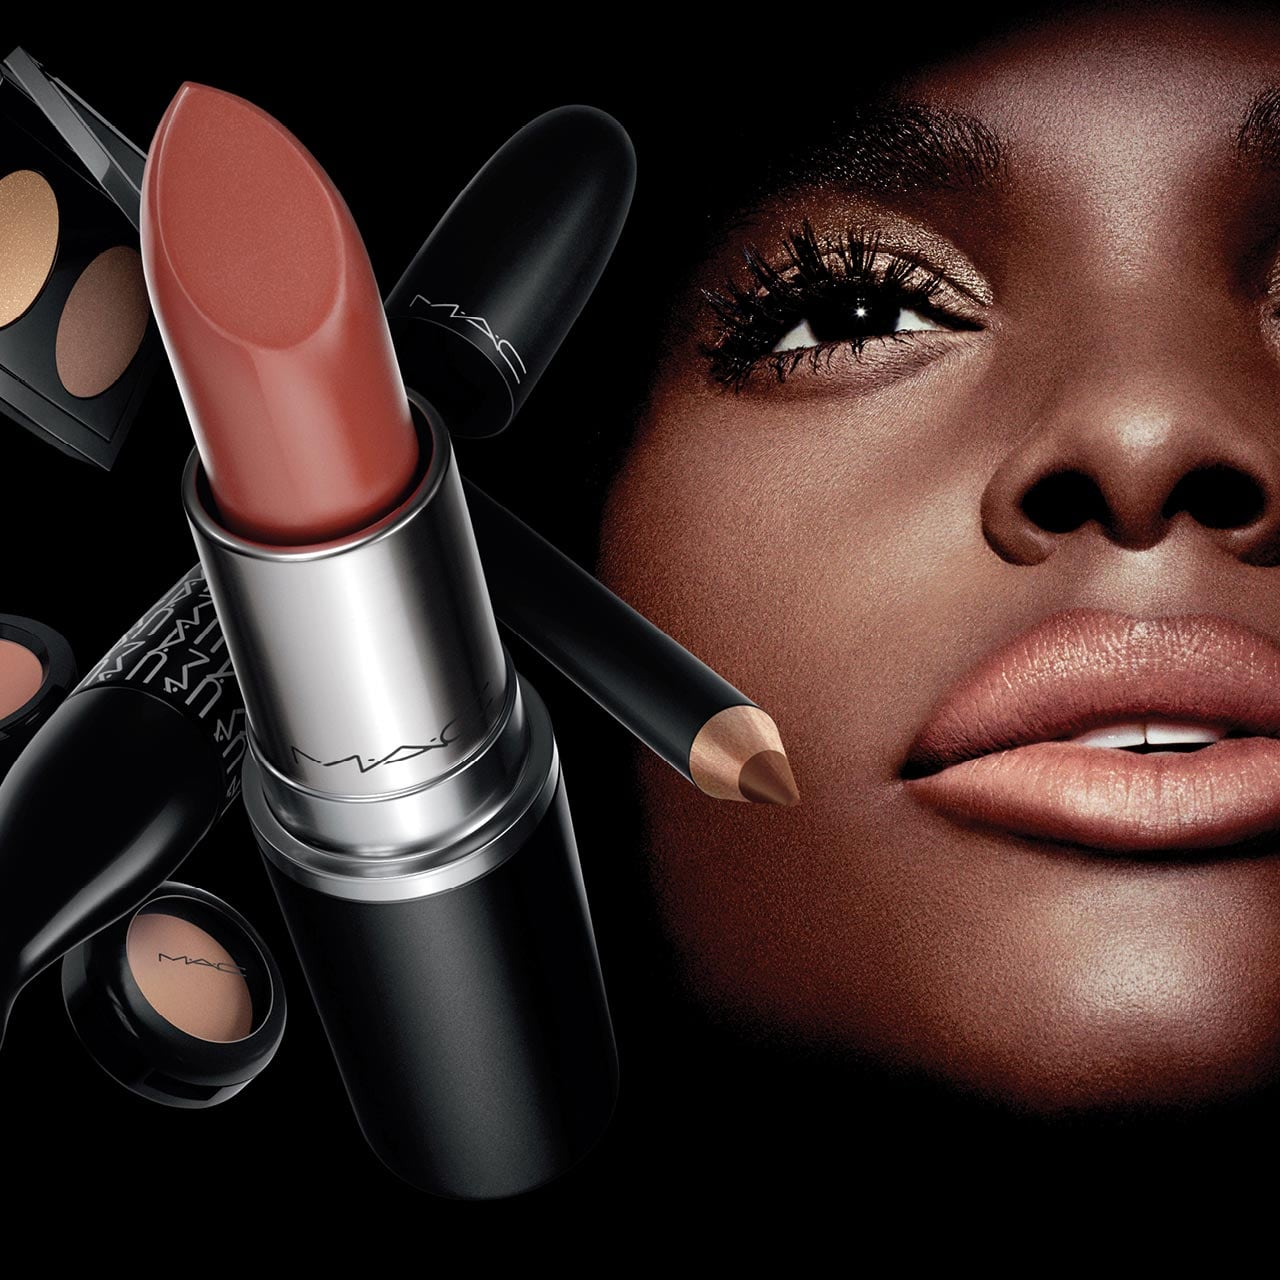 All other personal data available from your Facebook public profile will not be collected by MAC Cosmetics. If you disagree with the options offered by Facebook, please click on